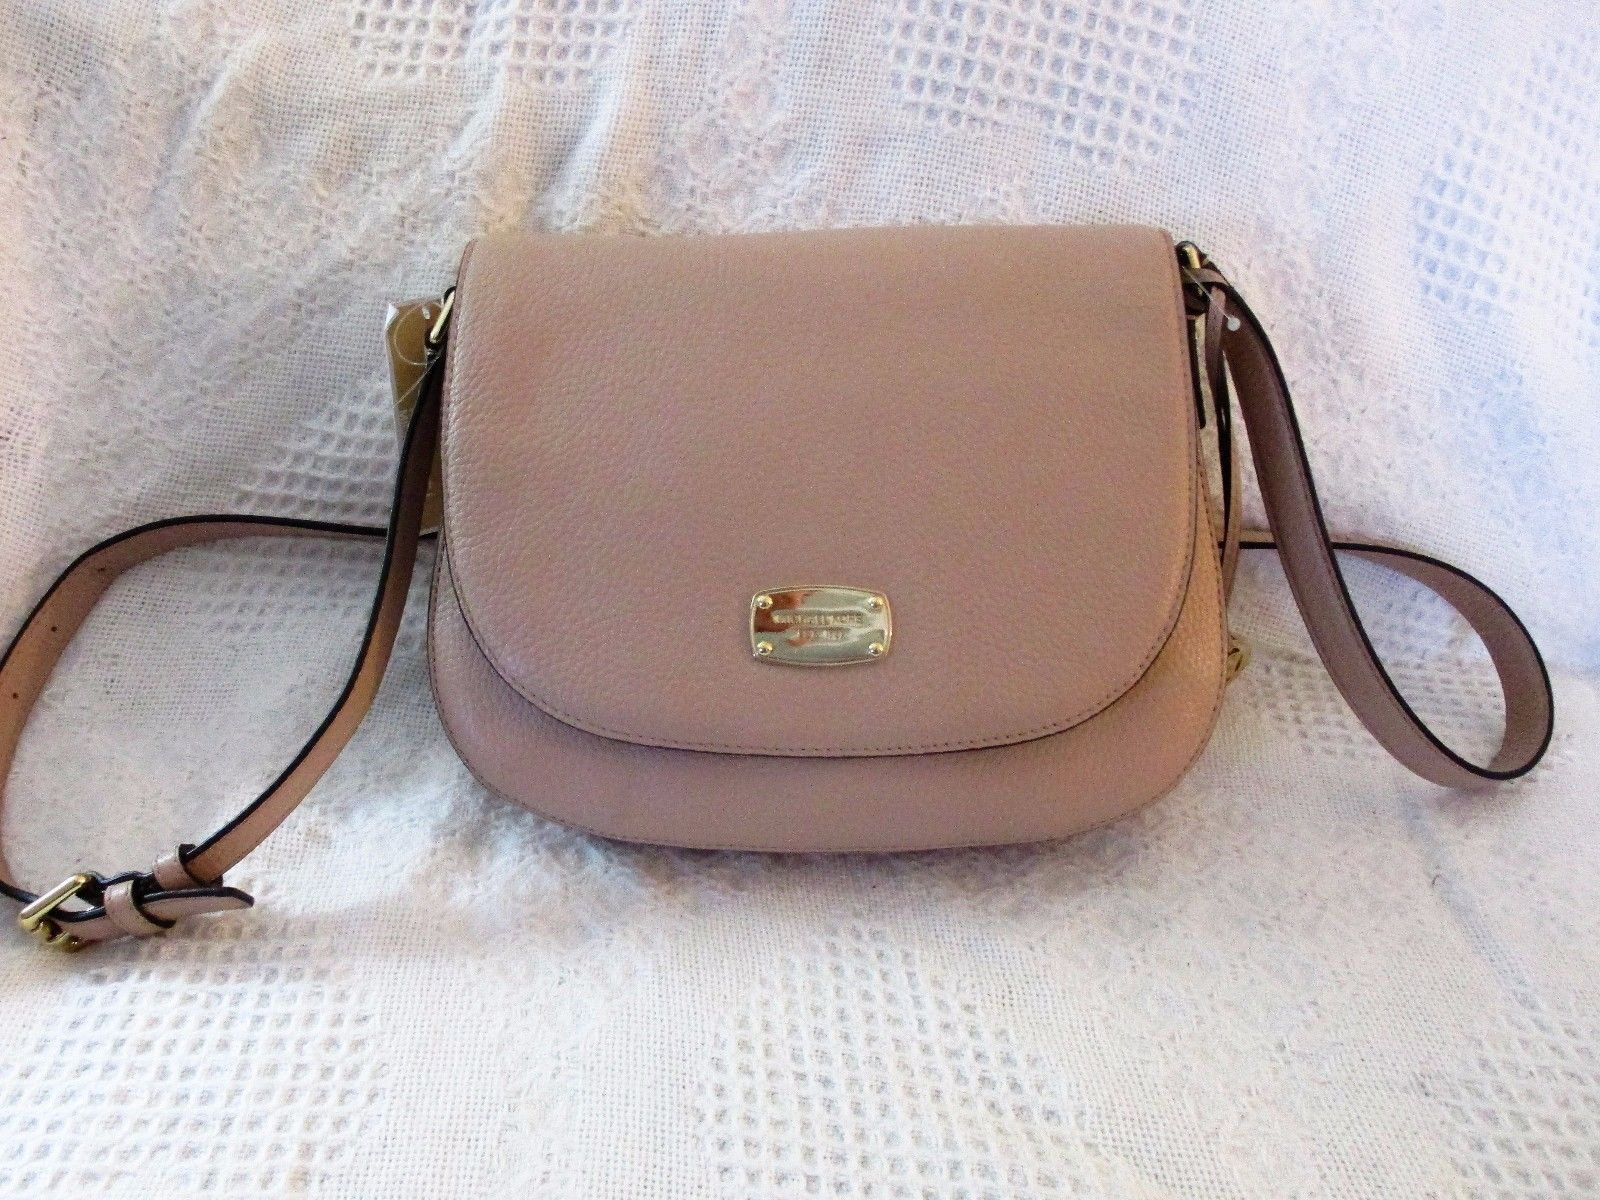 AUTHENTIC MICHAEL KORS Bedford Leather Saddle Shoulder Bag Blush NWT